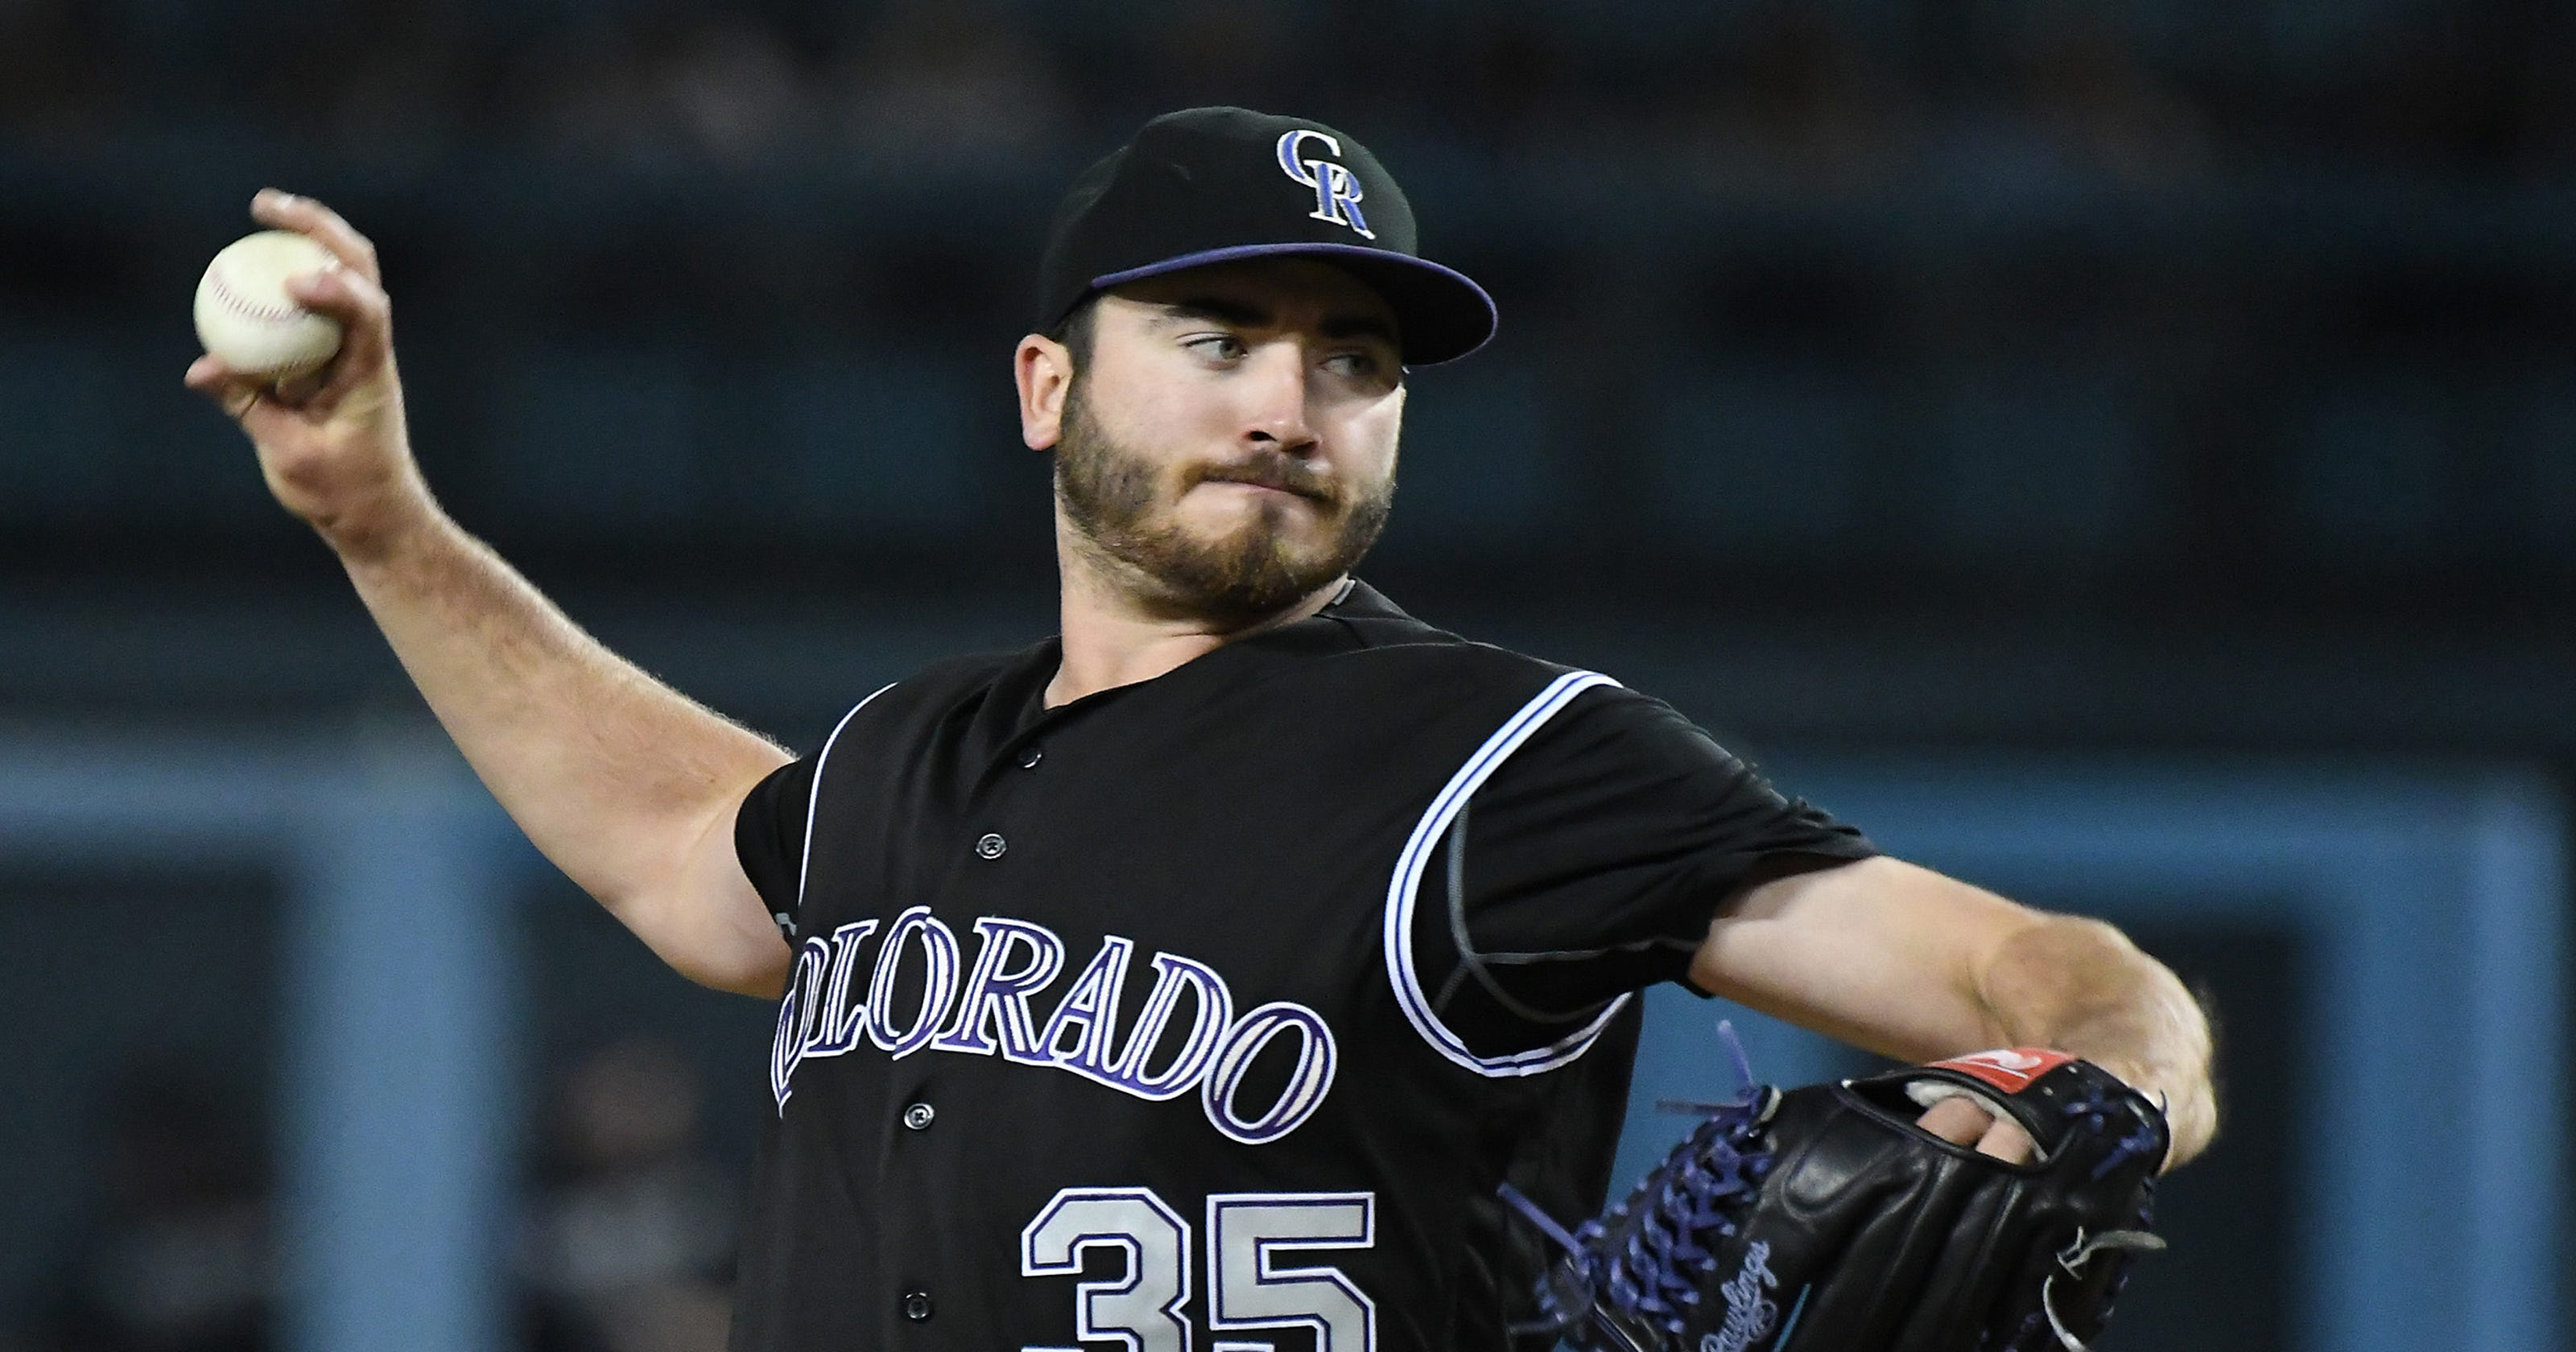 73894aa83dfdb Rockies pitcher Chad Bettis diagnosed with testicular cancer